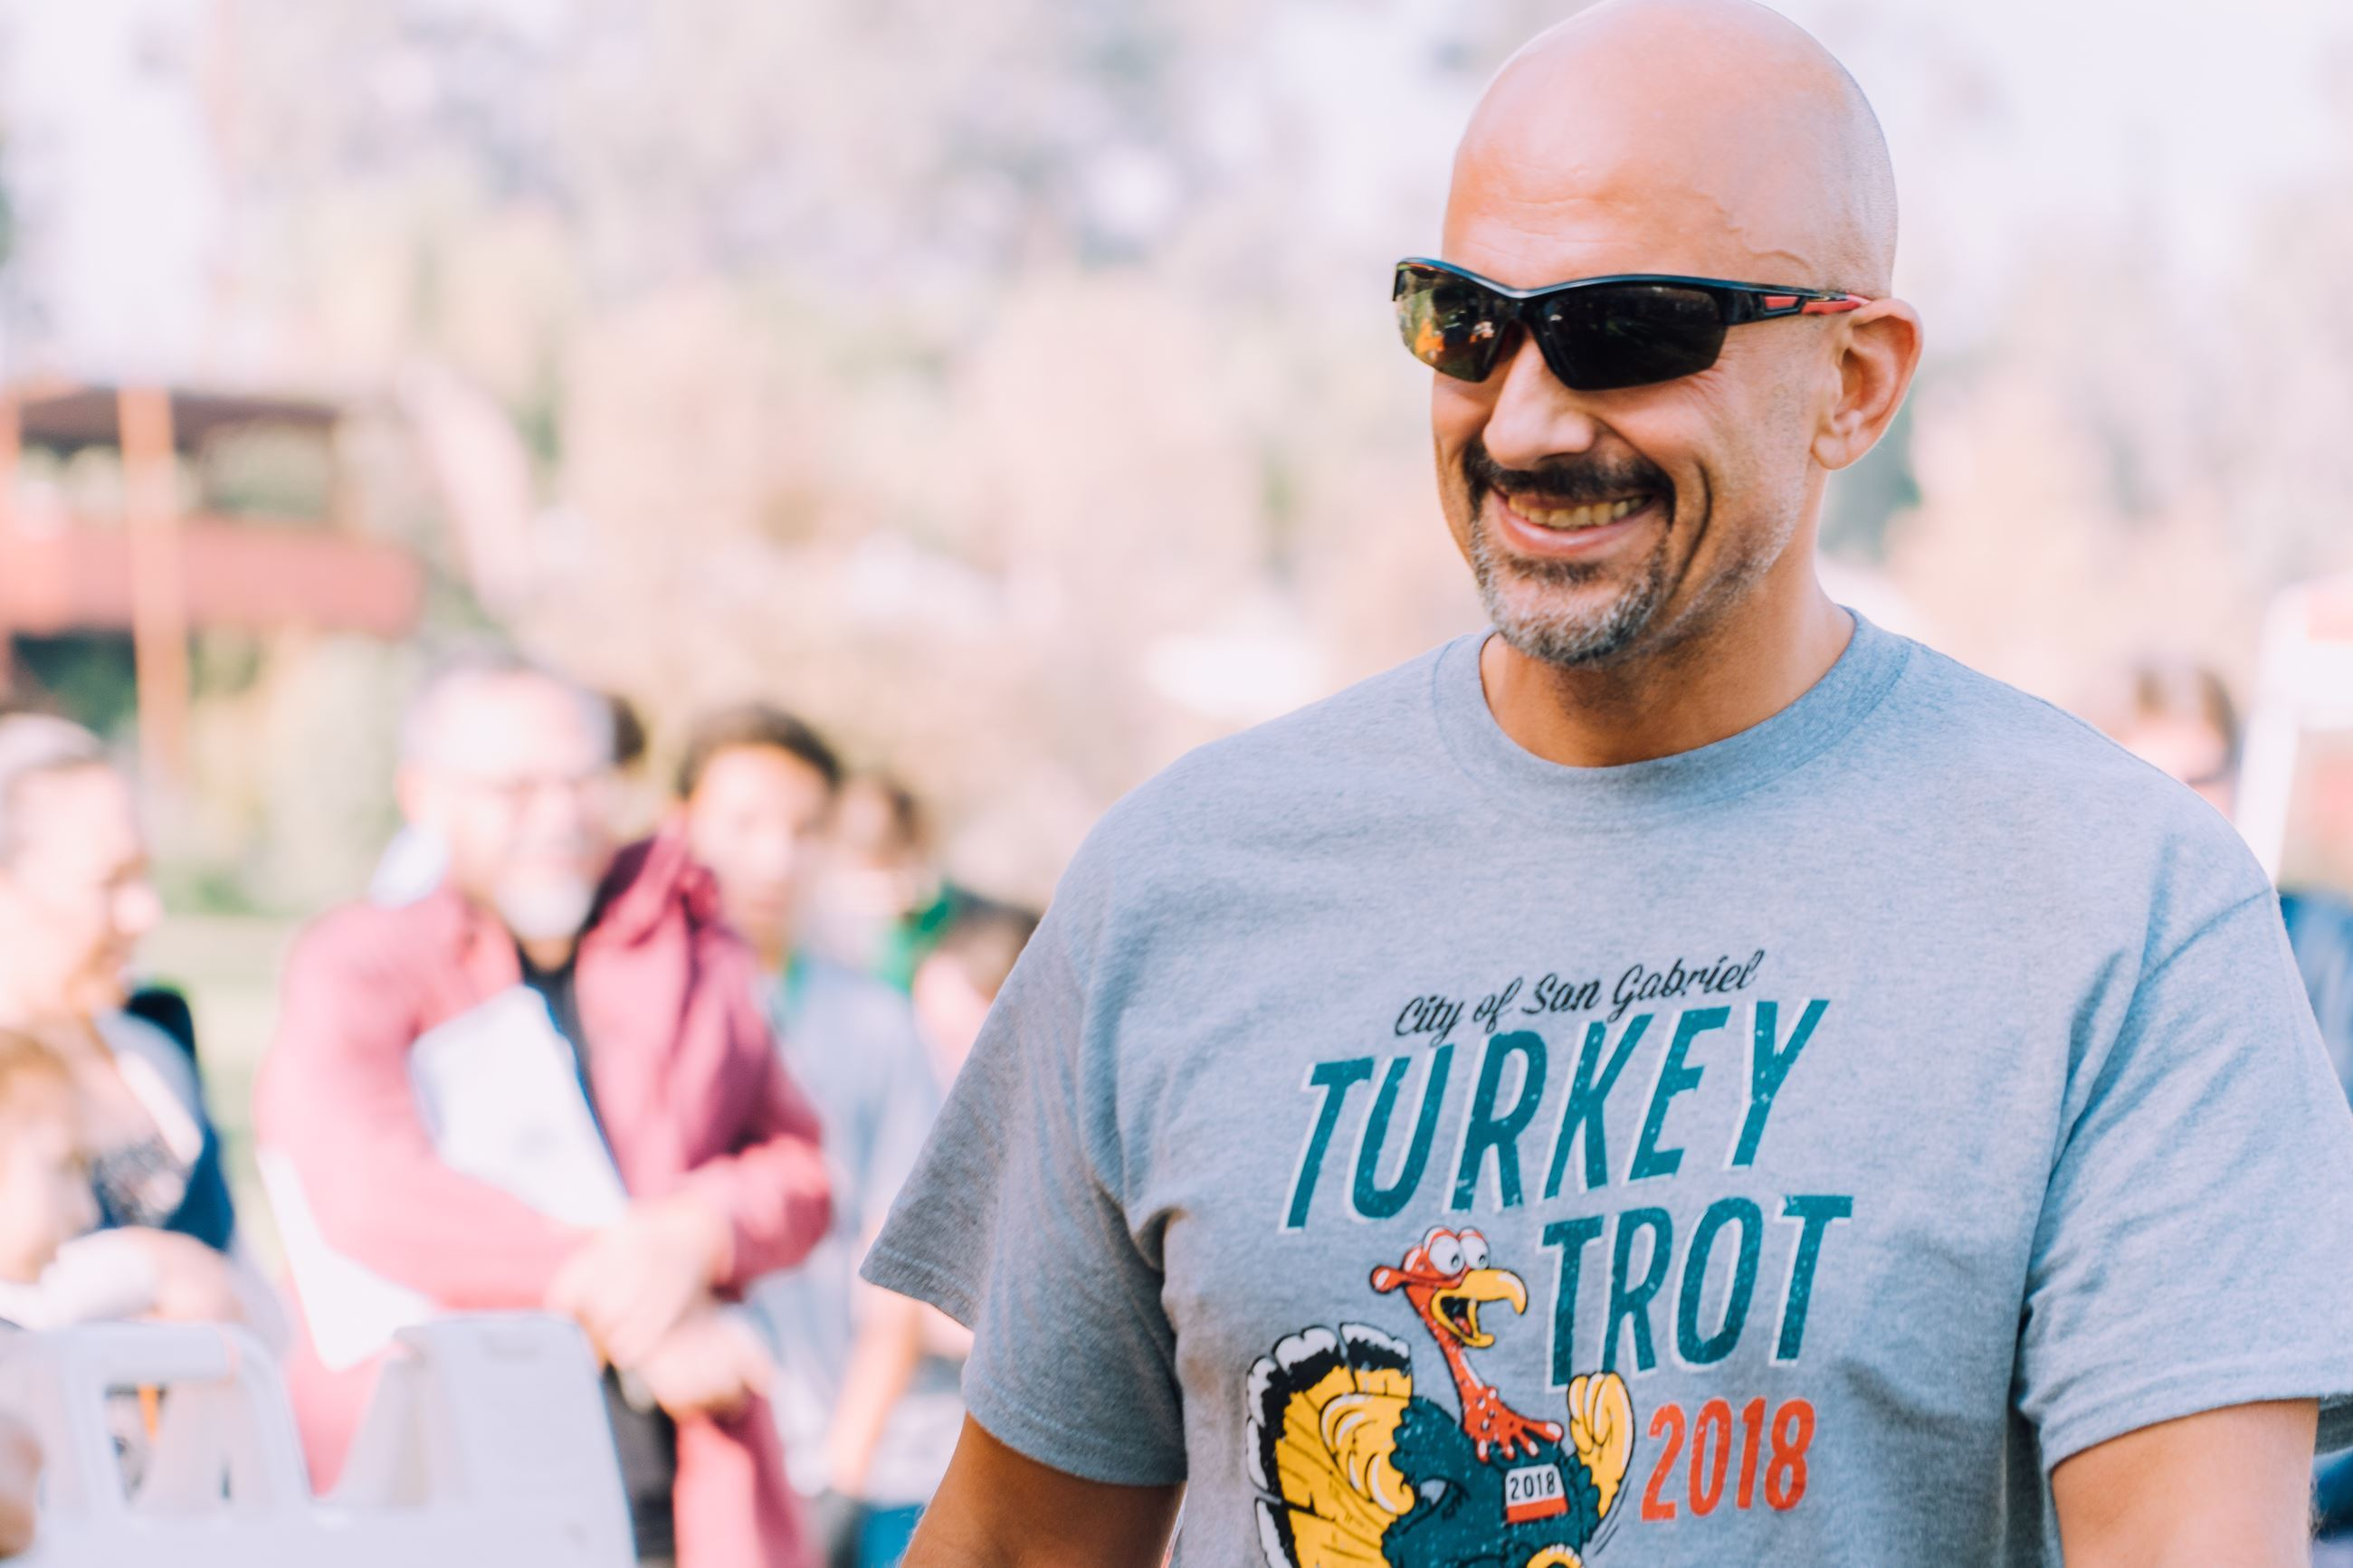 Pre-Register for the 44th Annual Turkey Trot